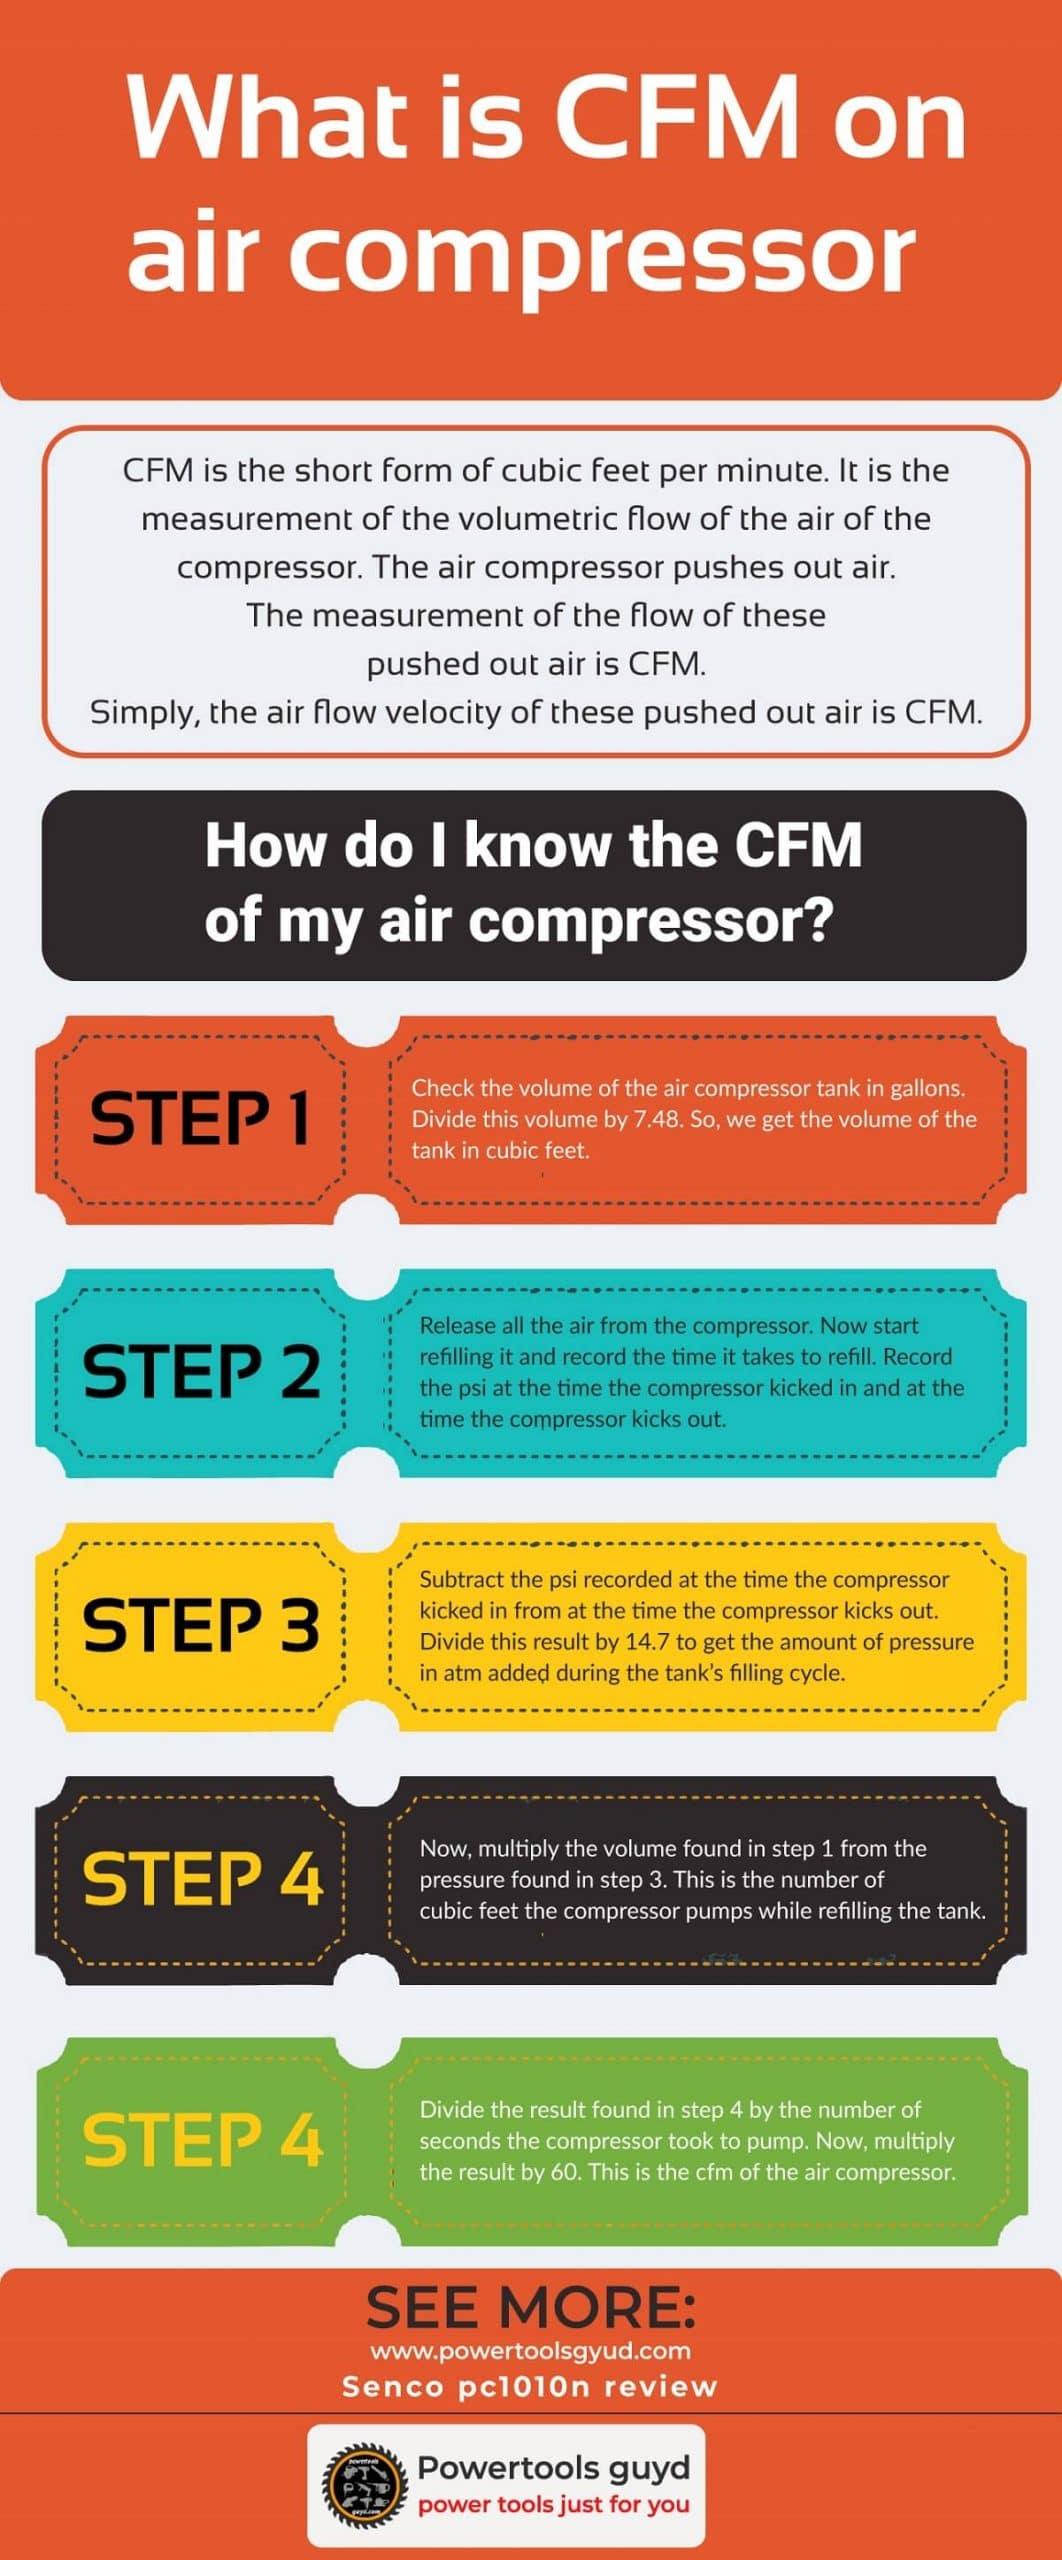 What is cfm on air compressor